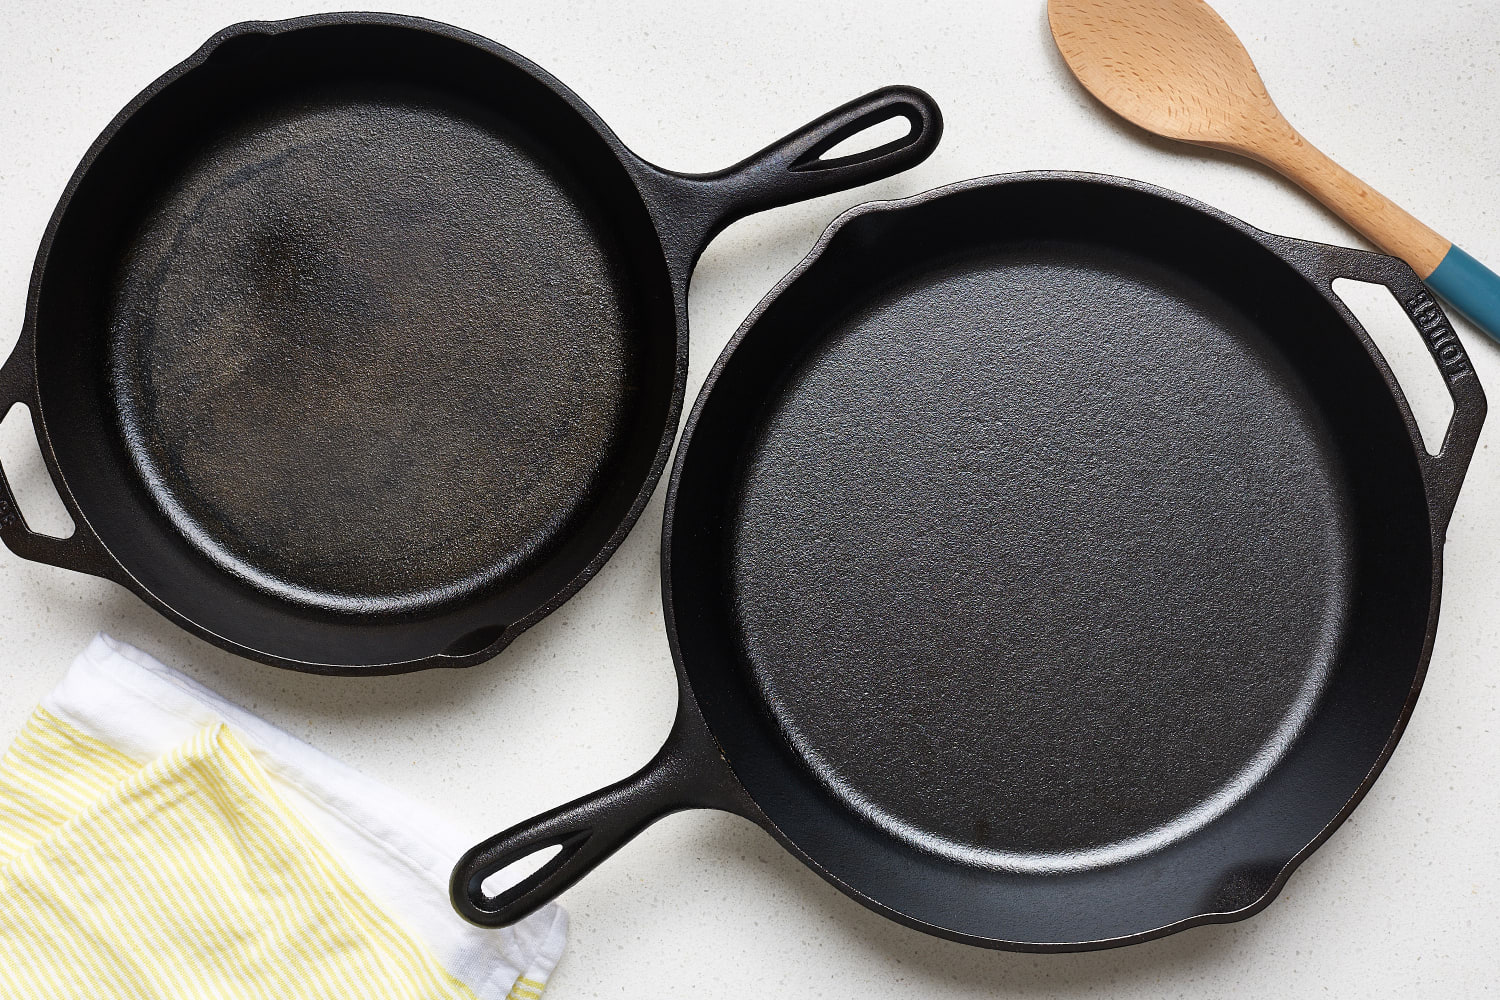 12 Top-Rated Amazon Finds for Cleaning and Storing Your Cast Iron Skillet (Starting at $3!)